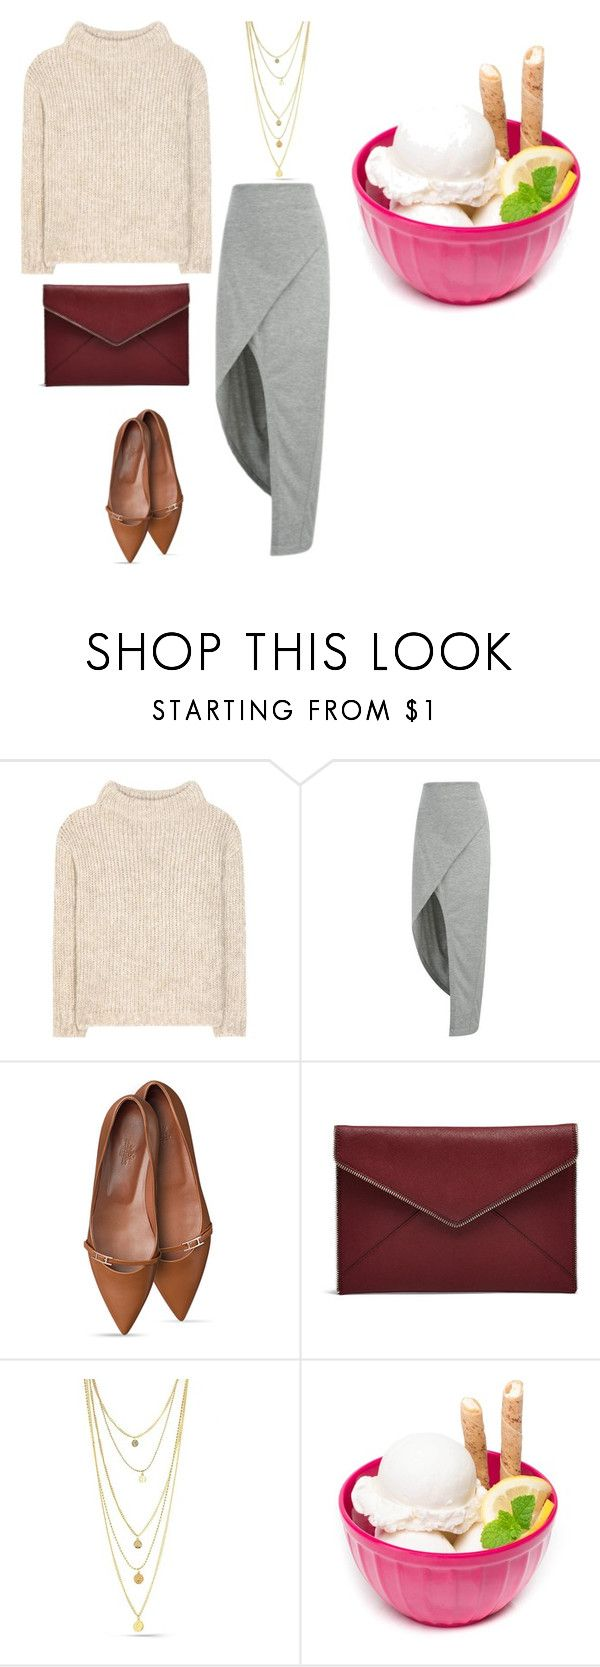 """""""Untitled #13398"""" by jayda365 ❤ liked on Polyvore featuring Tom Ford, Finders Keepers, Rebecca Minkoff and ZAK"""